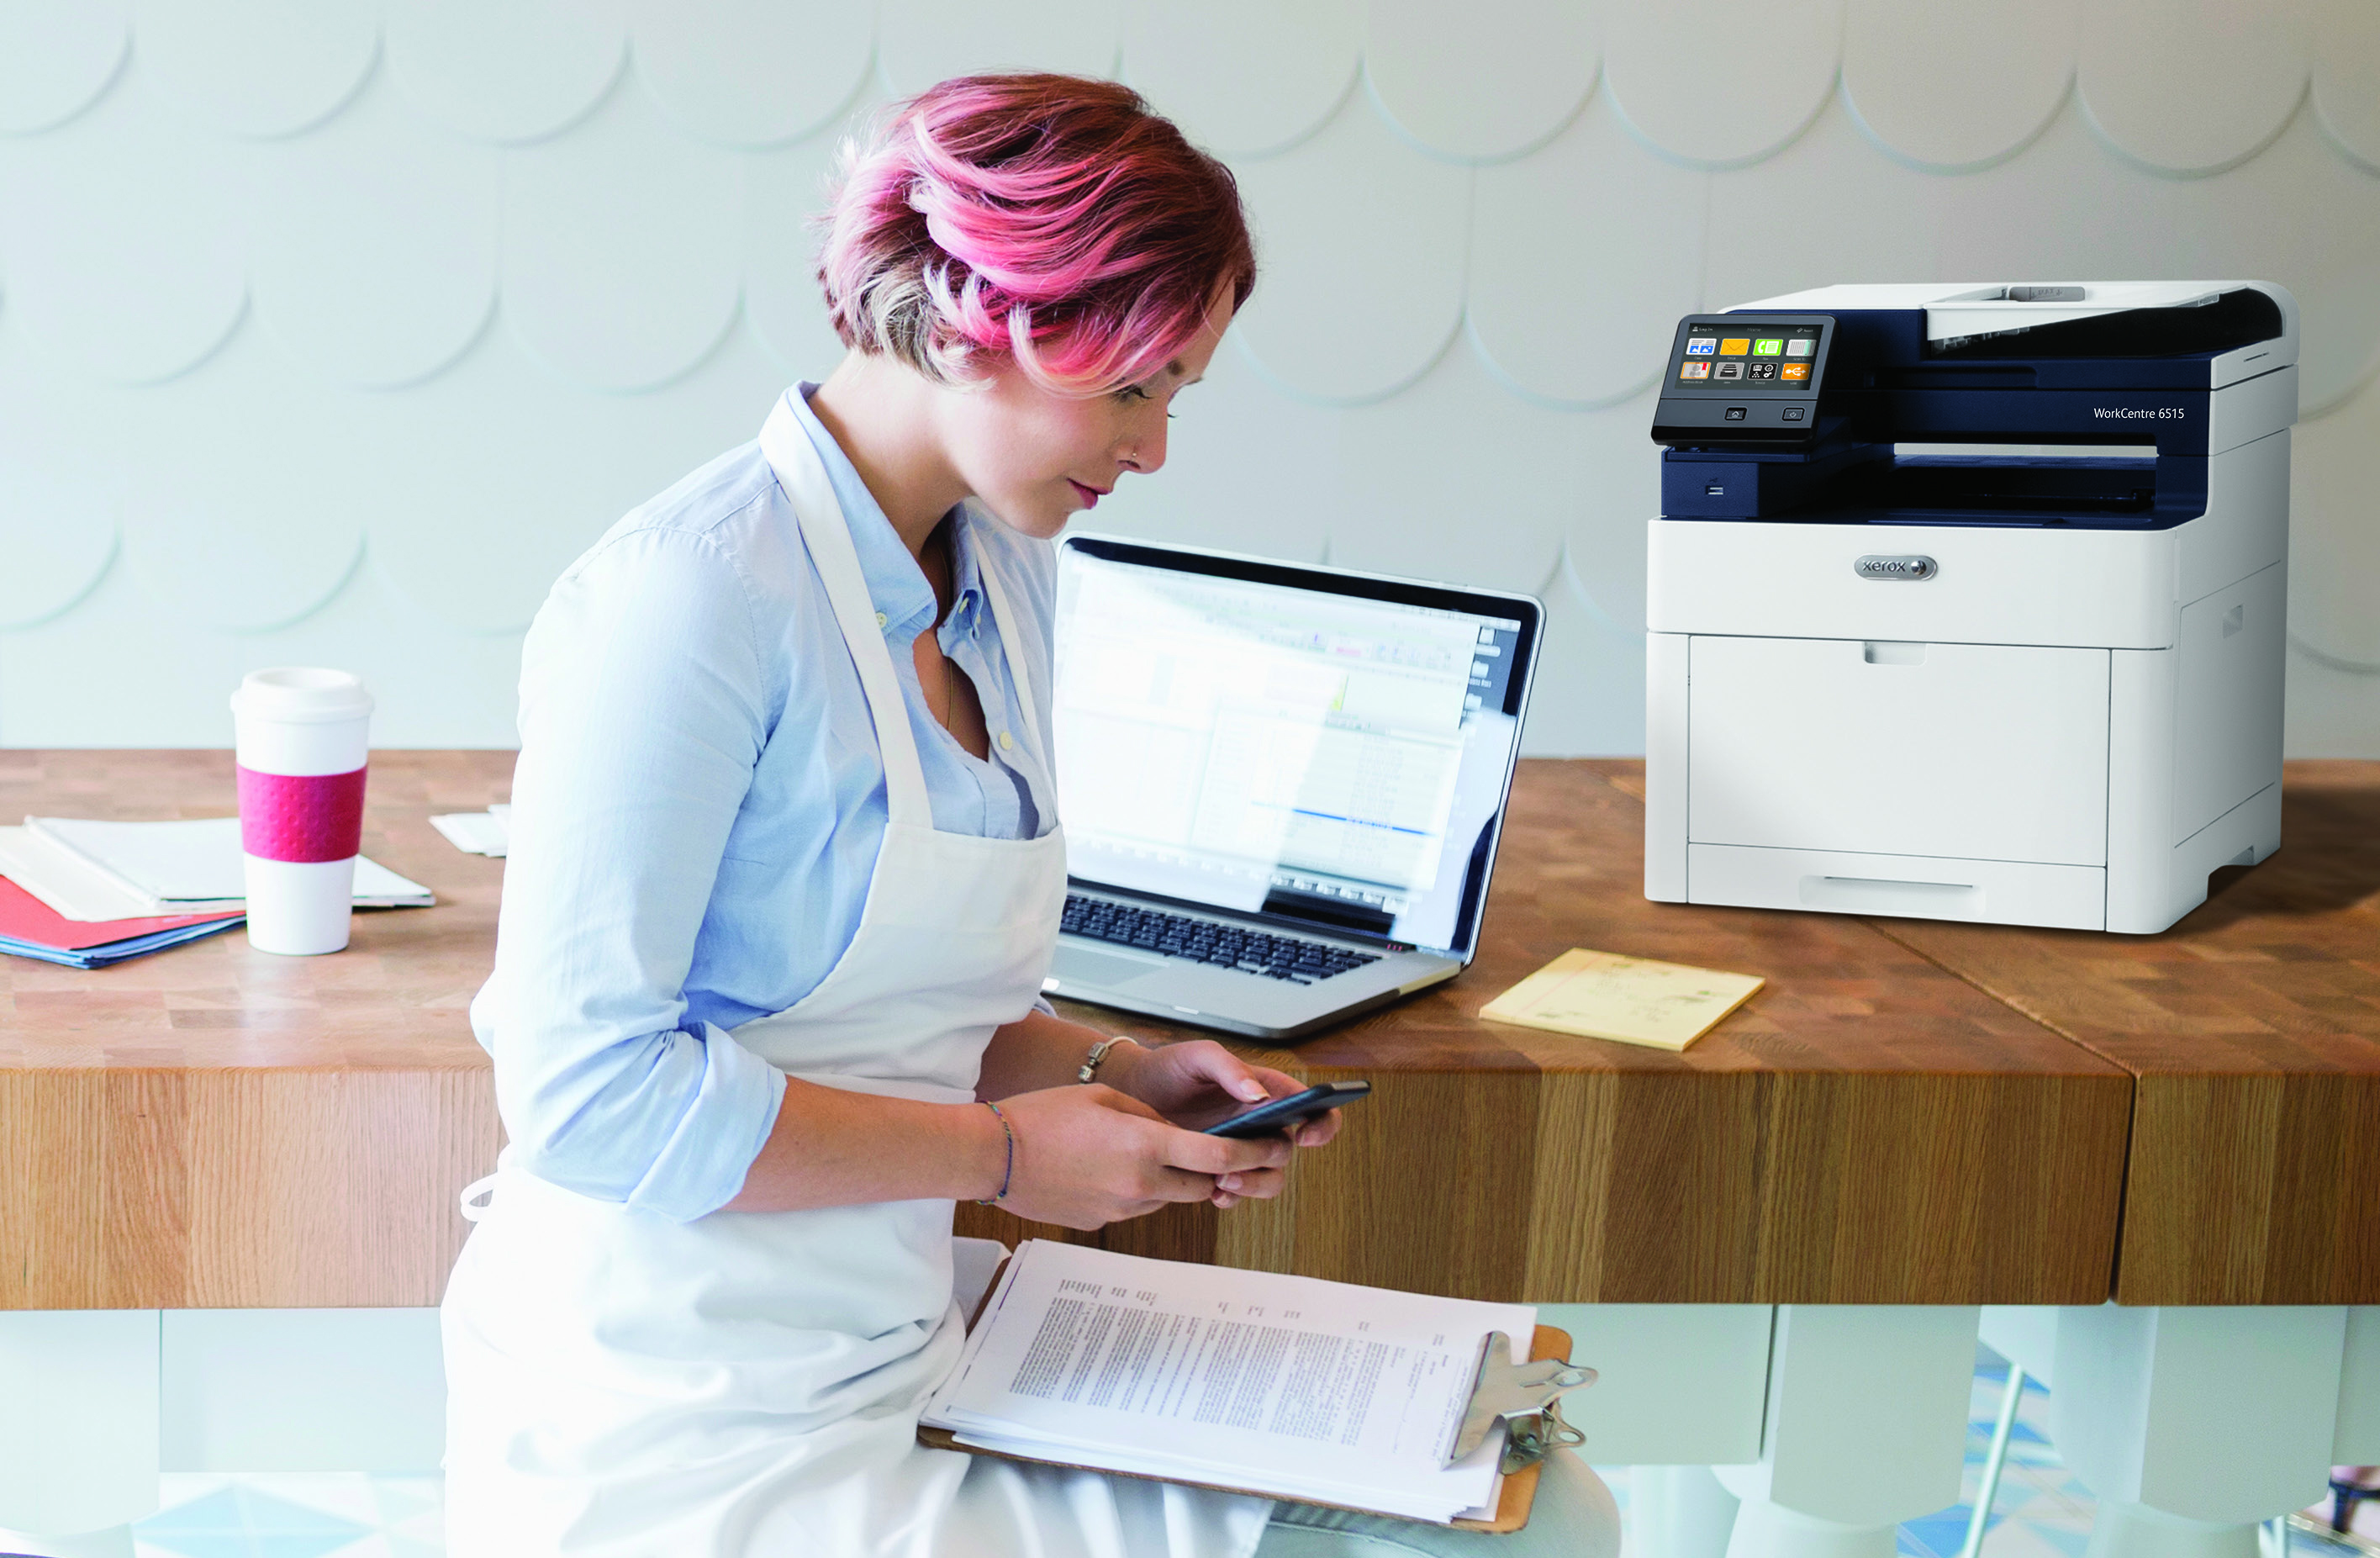 Employee working in an office with a Xerox Printer